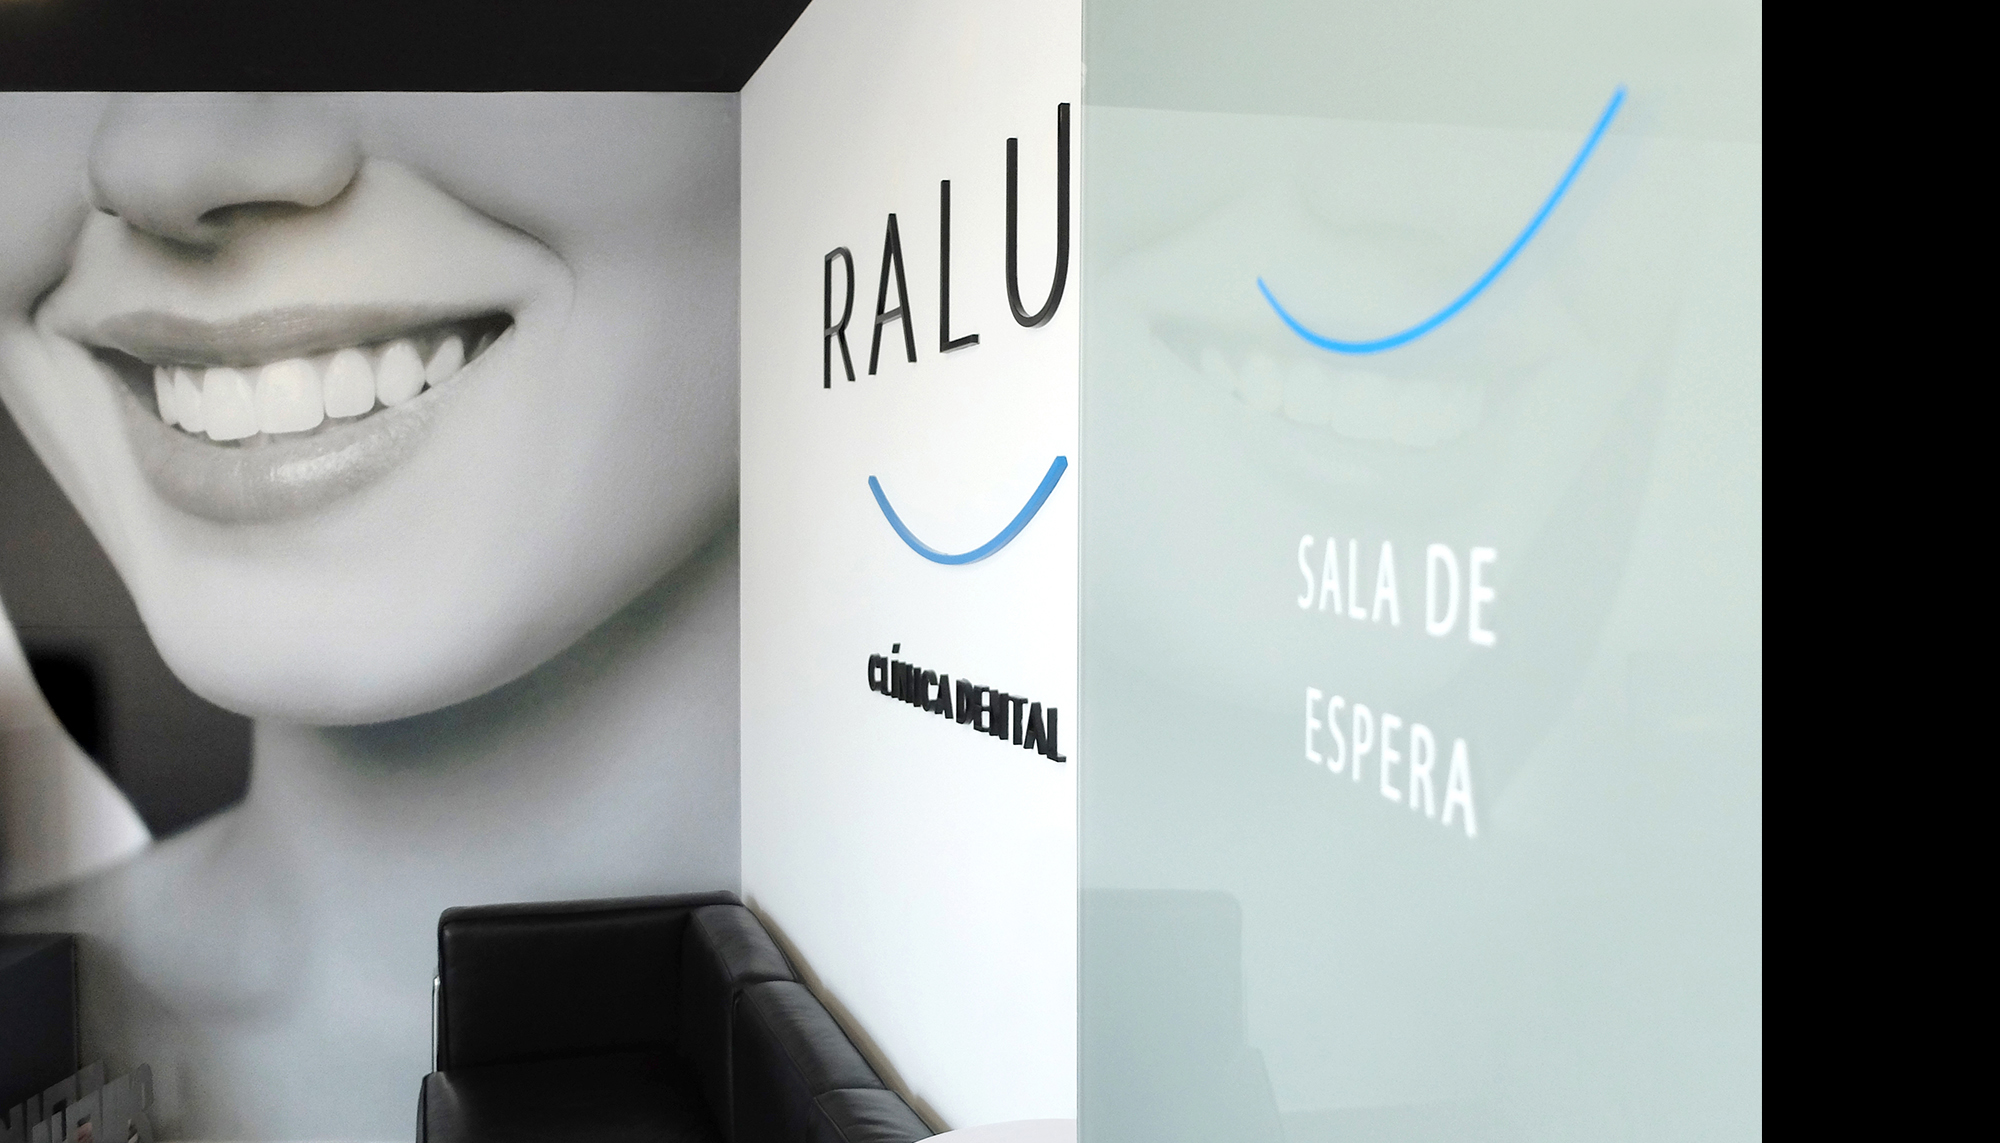 clinica-dental-raluy-08